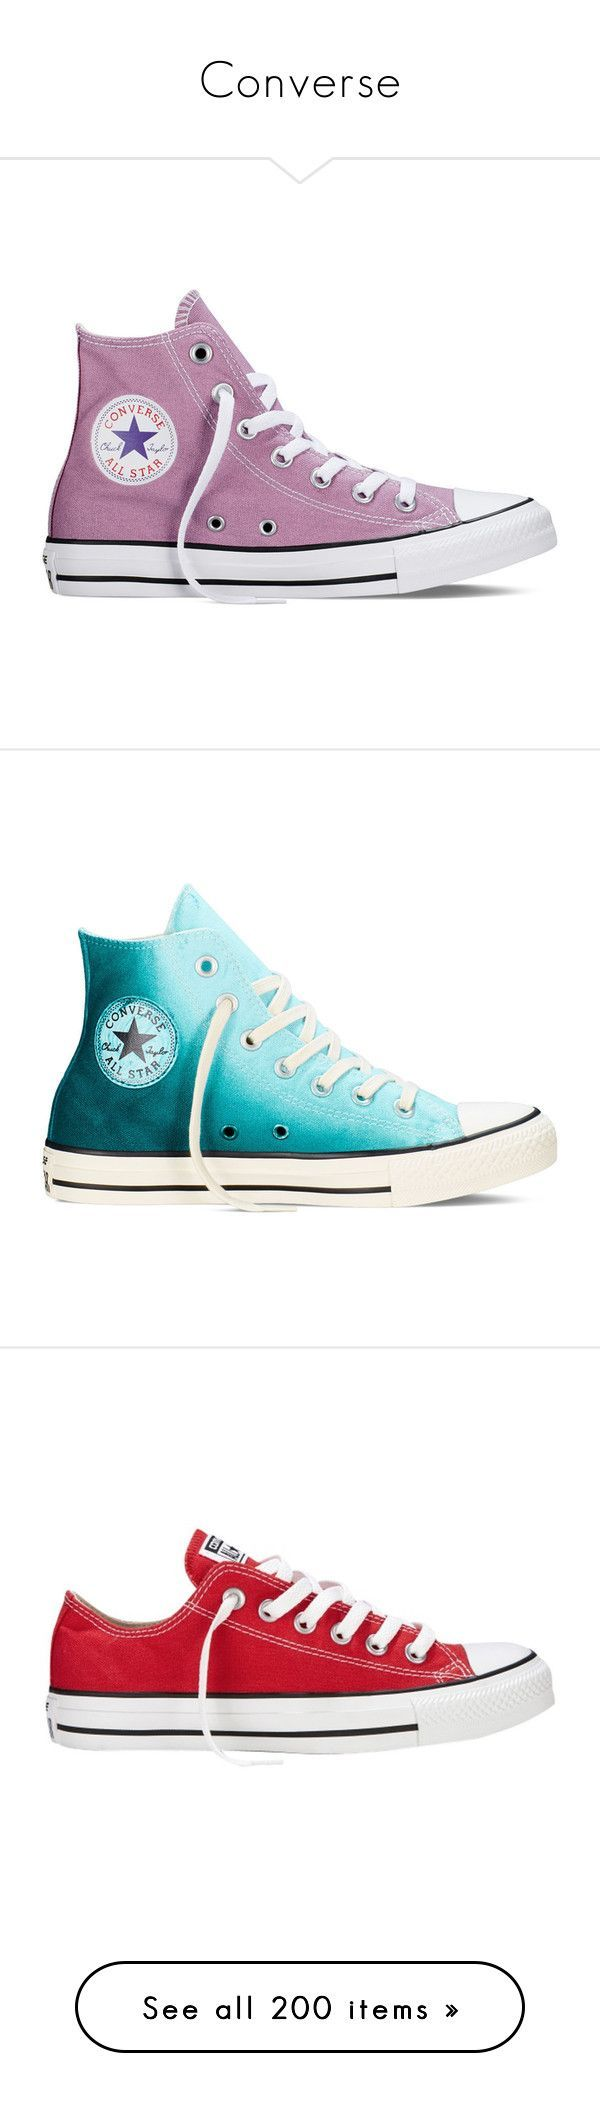 """Converse"" by lghockey ❤ liked on Polyvore featuring shoes, sneakers, converse, powder purple, converse sneakers, converse high tops, star sneakers, purple high tops, high top trainers and teal green shoes"